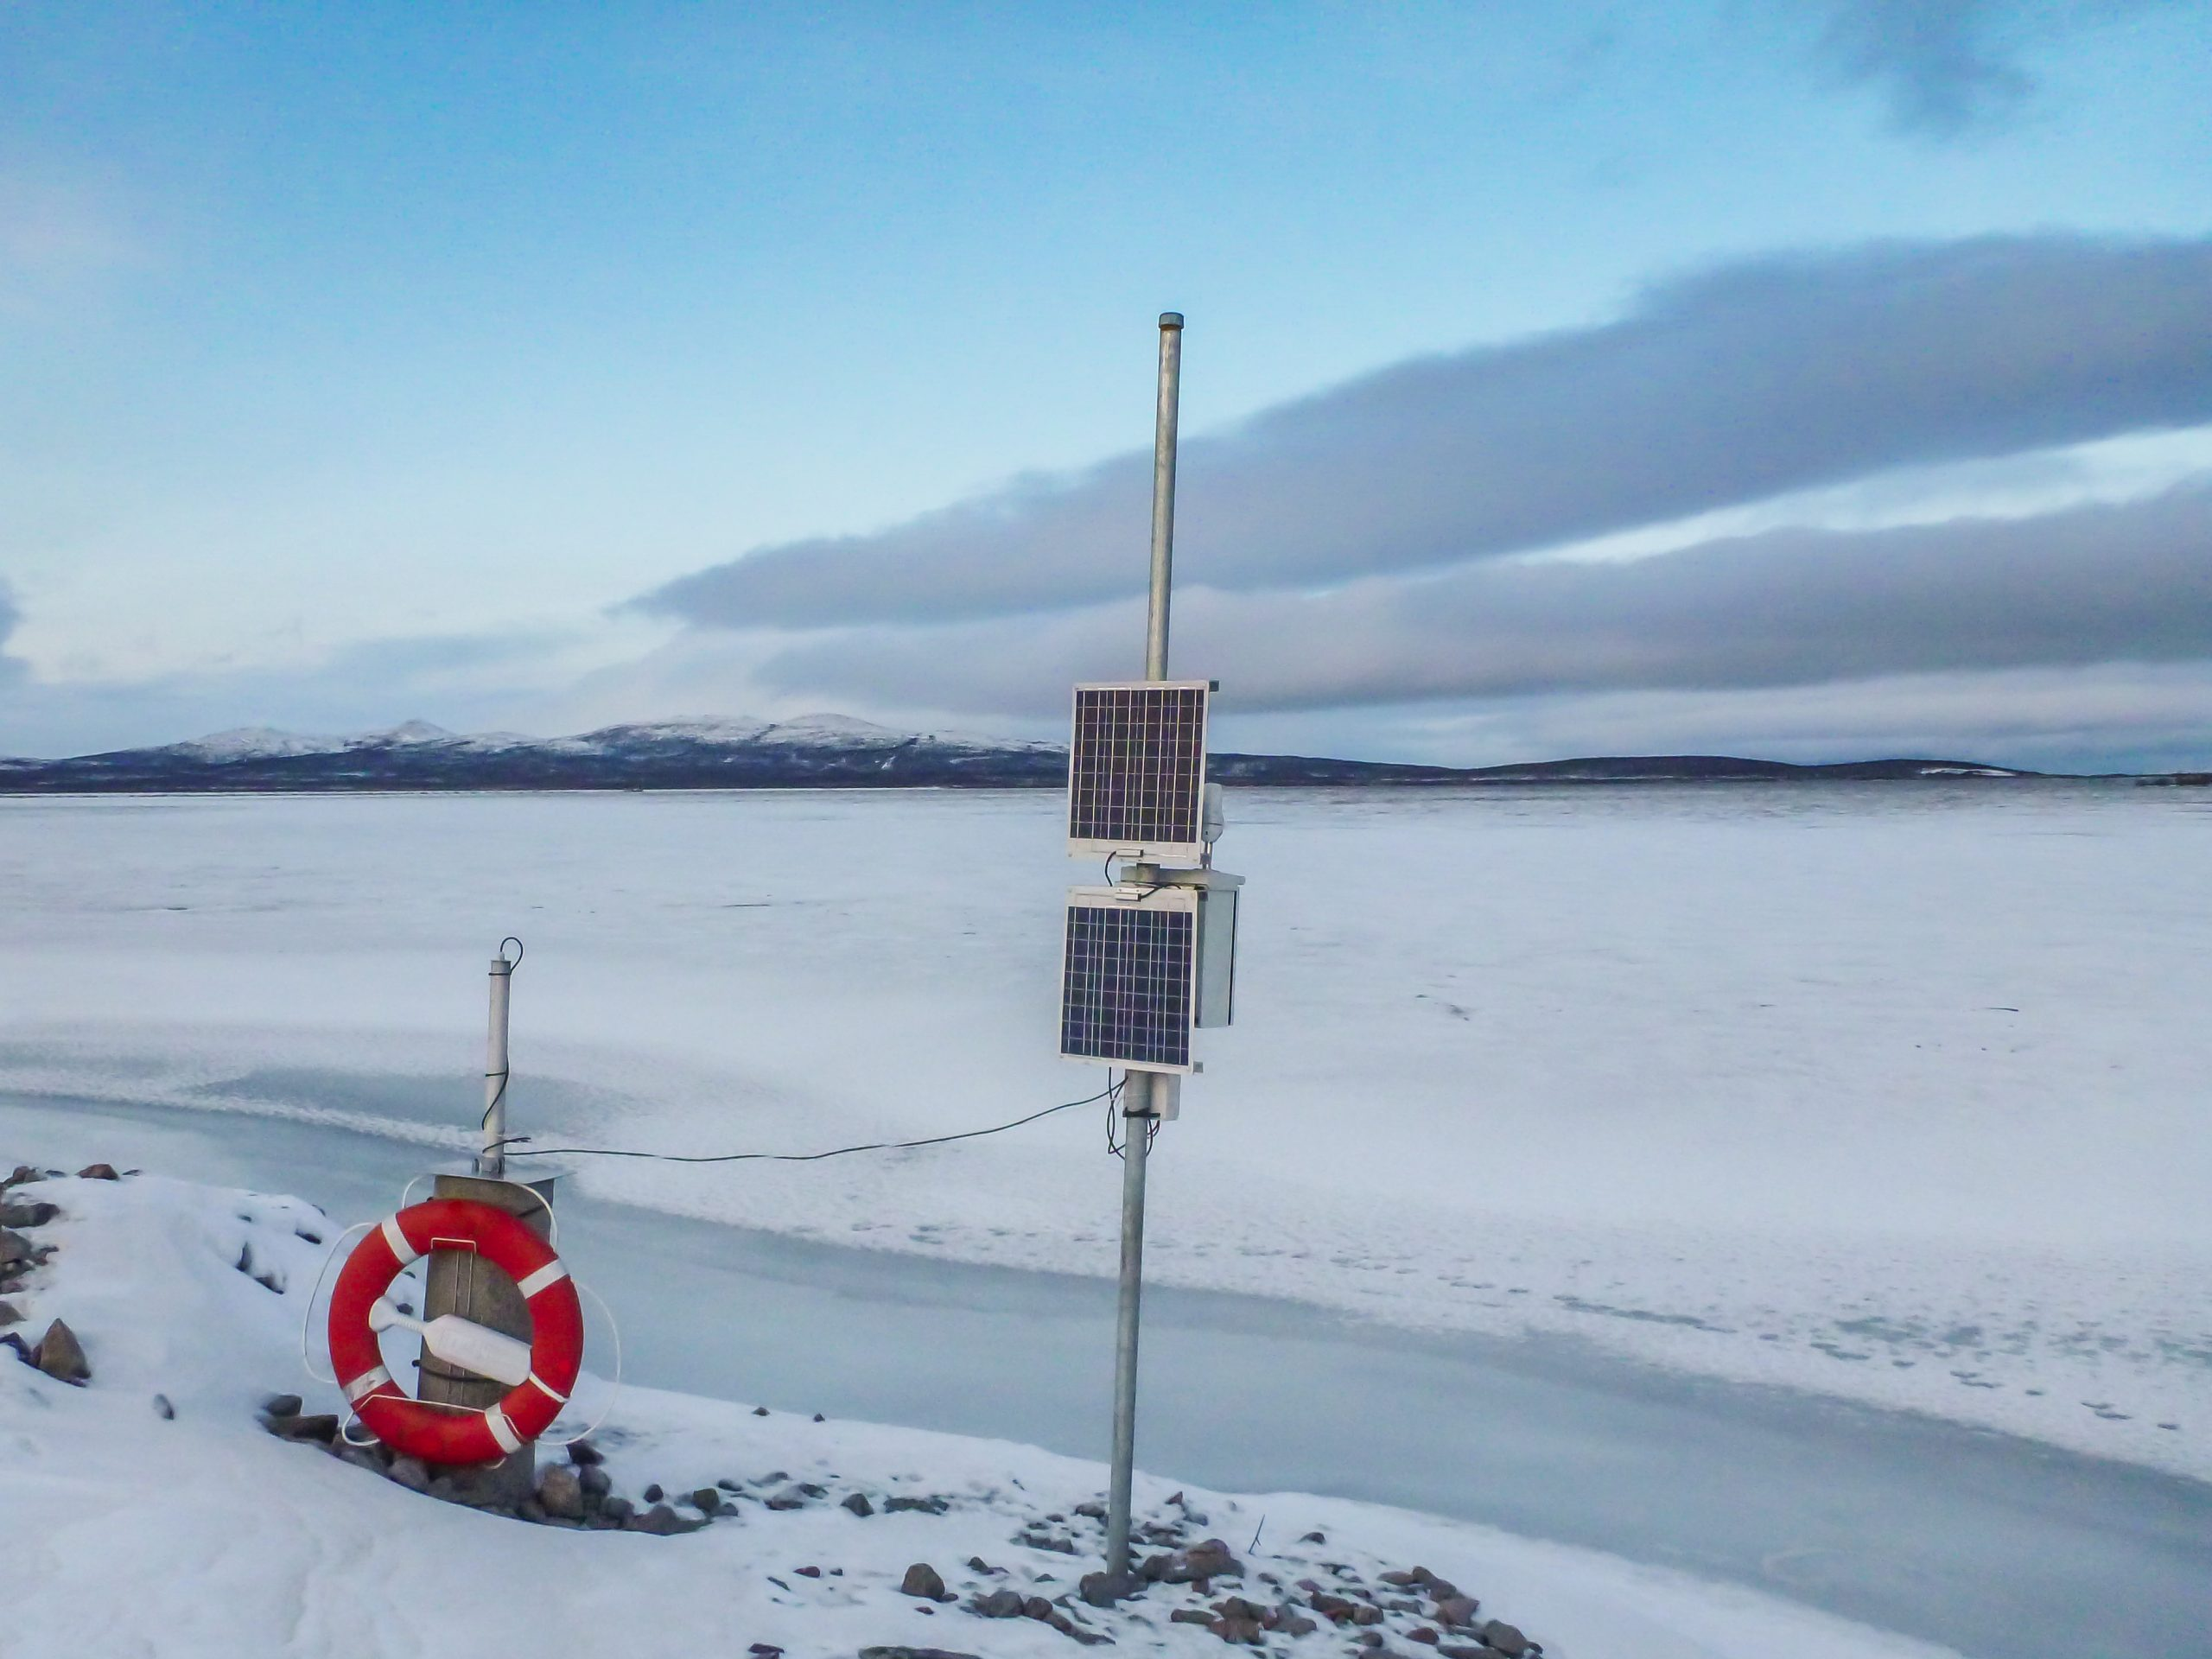 LevelCatchR measuring water lavel in a tailing dam above the Artic circle